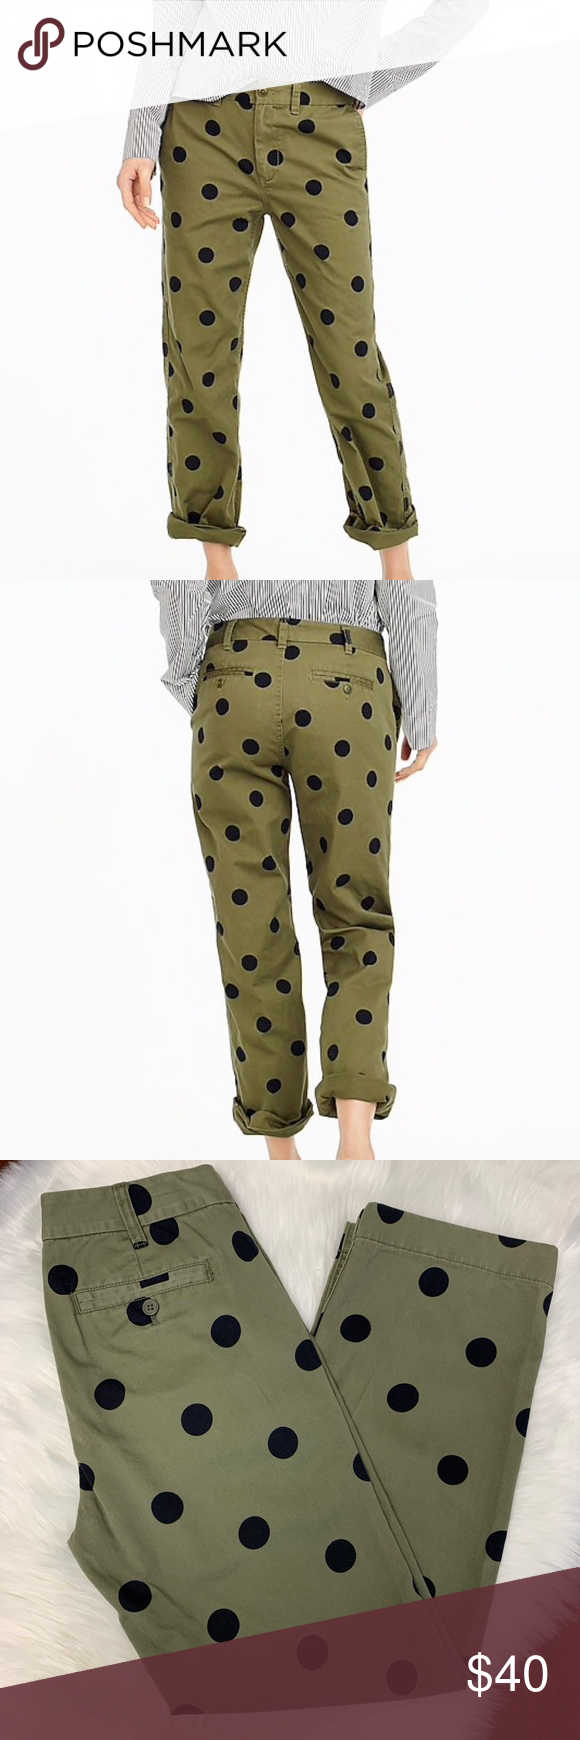 37fa194c81bbd J Crew Boyfriend Chino Pant in Polka Dots J Crew boyfriend chino pant in  polka dots, green with black dots, size 2 petite, aprox. measurements in  pictures, ...